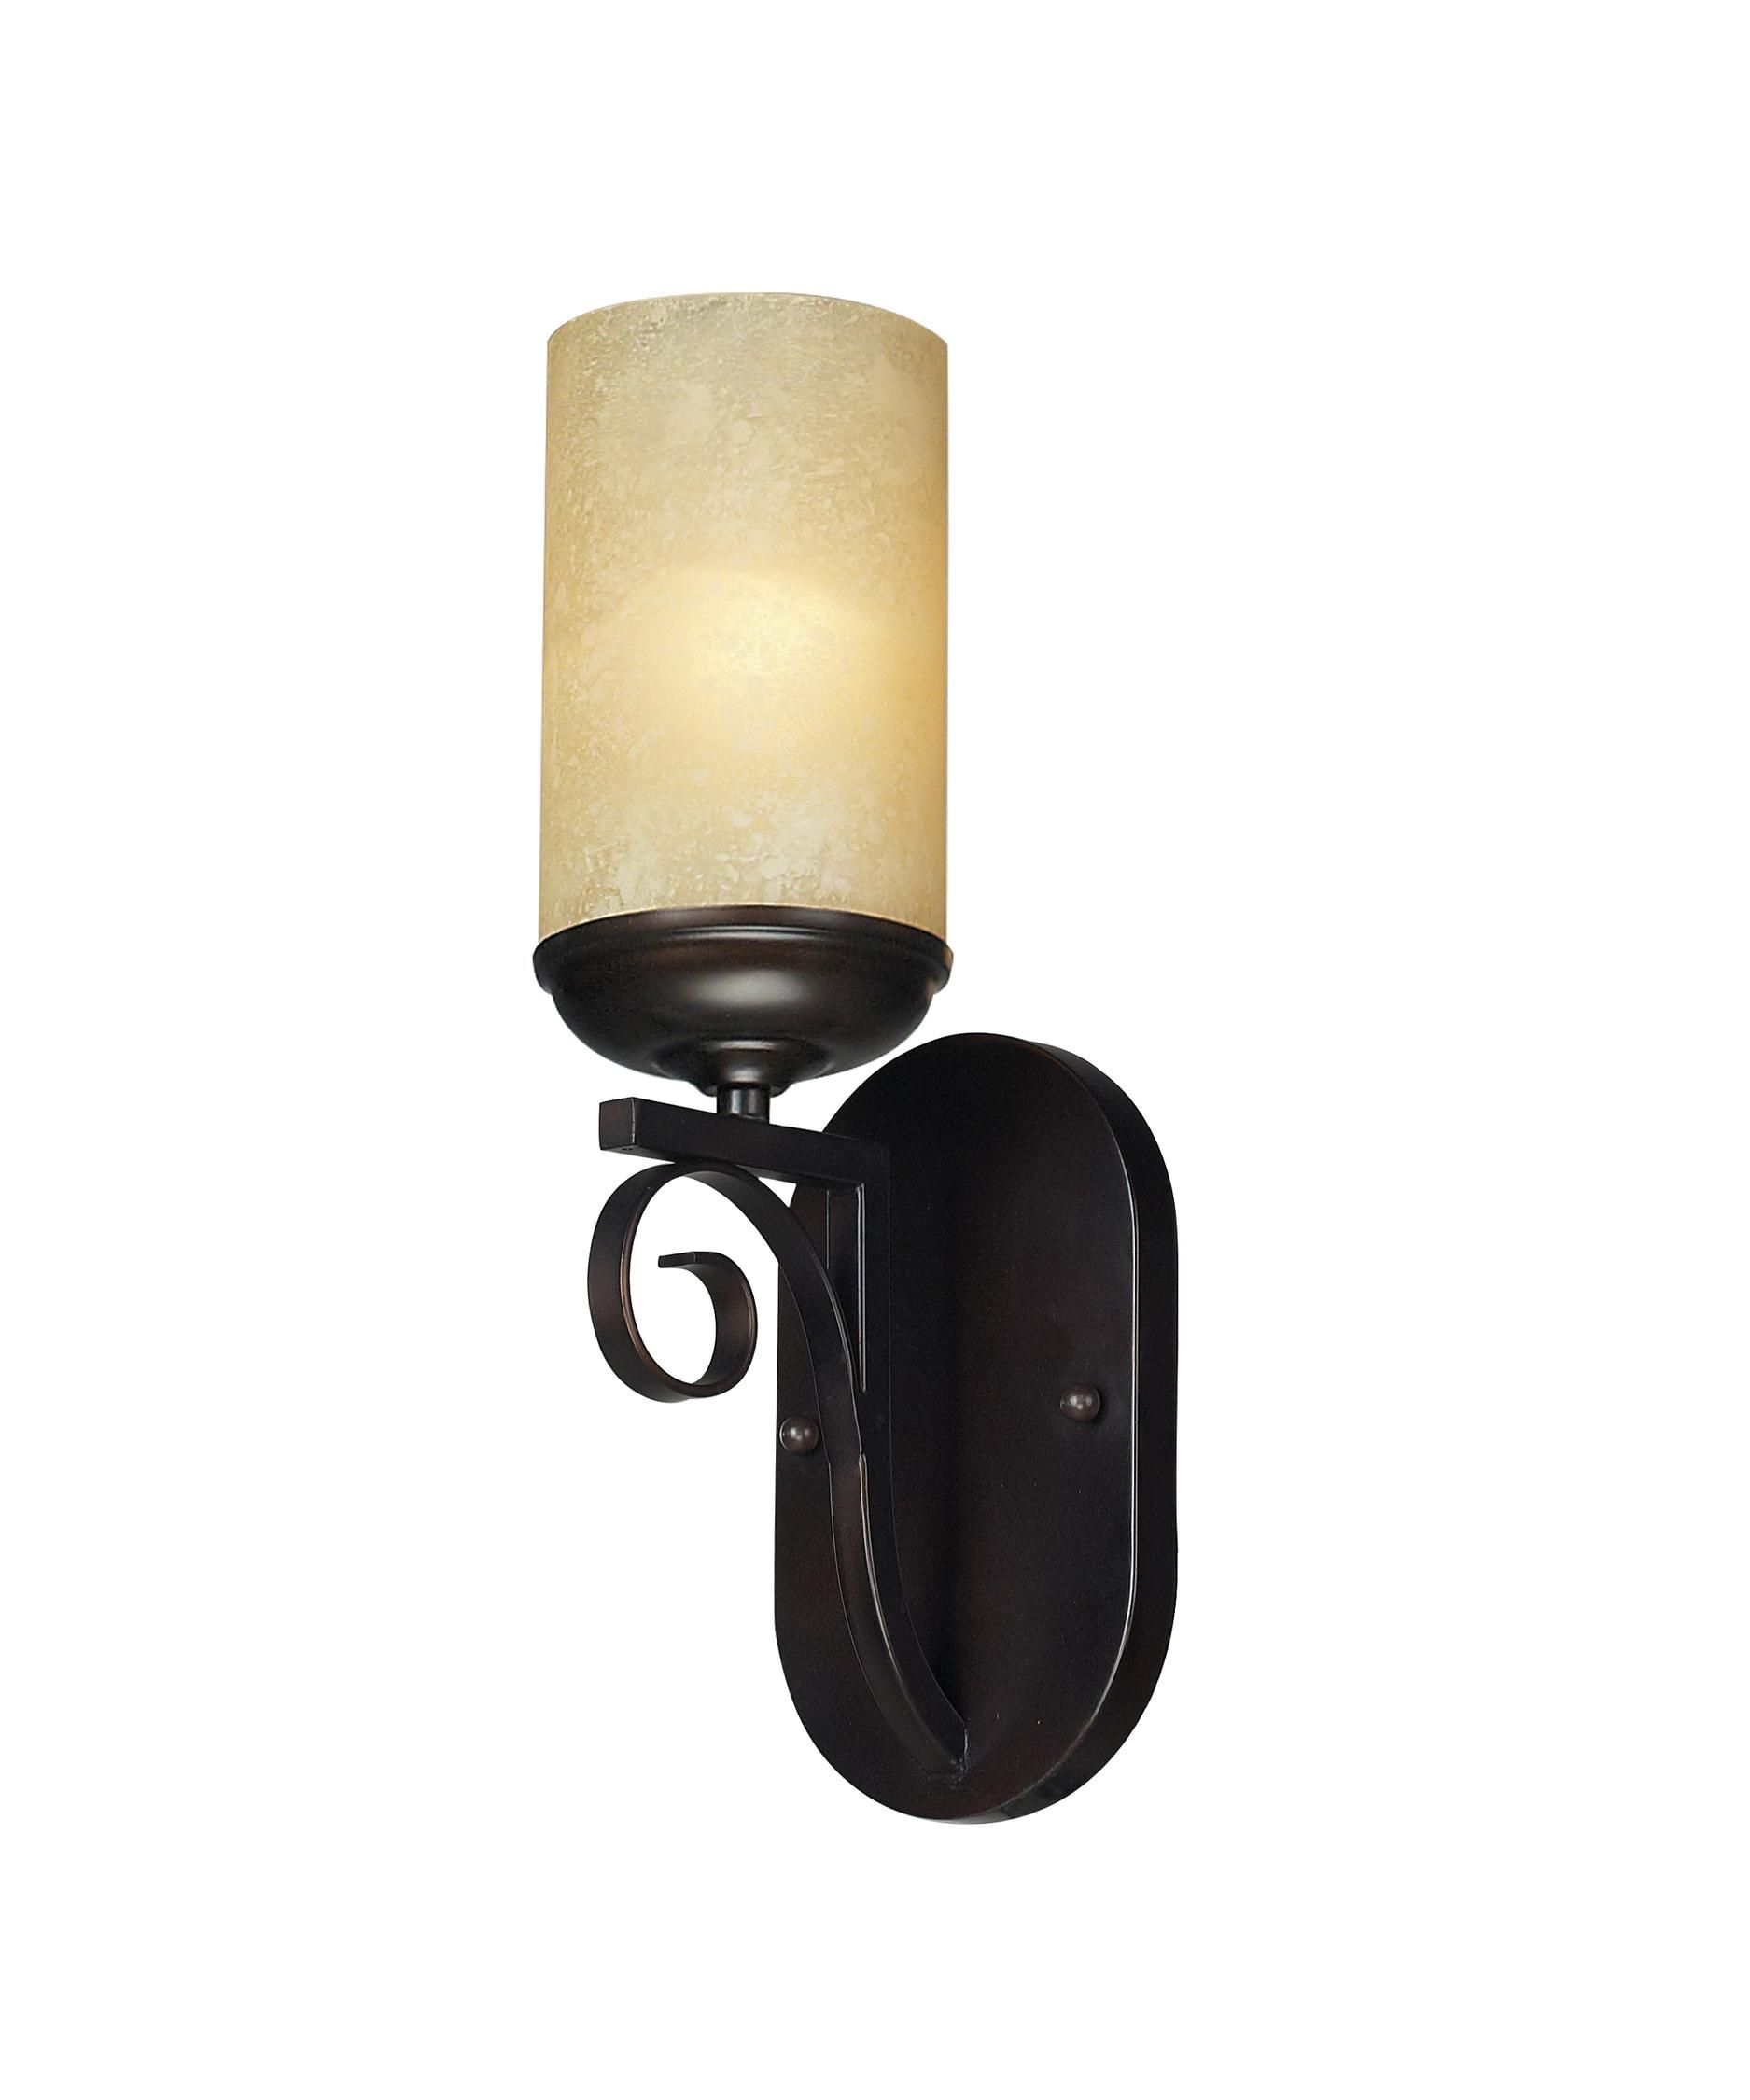 Elk lighting avondale 5 inch wide wall sconce elk lighting and elk elk lighting 11510 1 led avondale energy smart wall sconce capitol lighting 1 amipublicfo Image collections